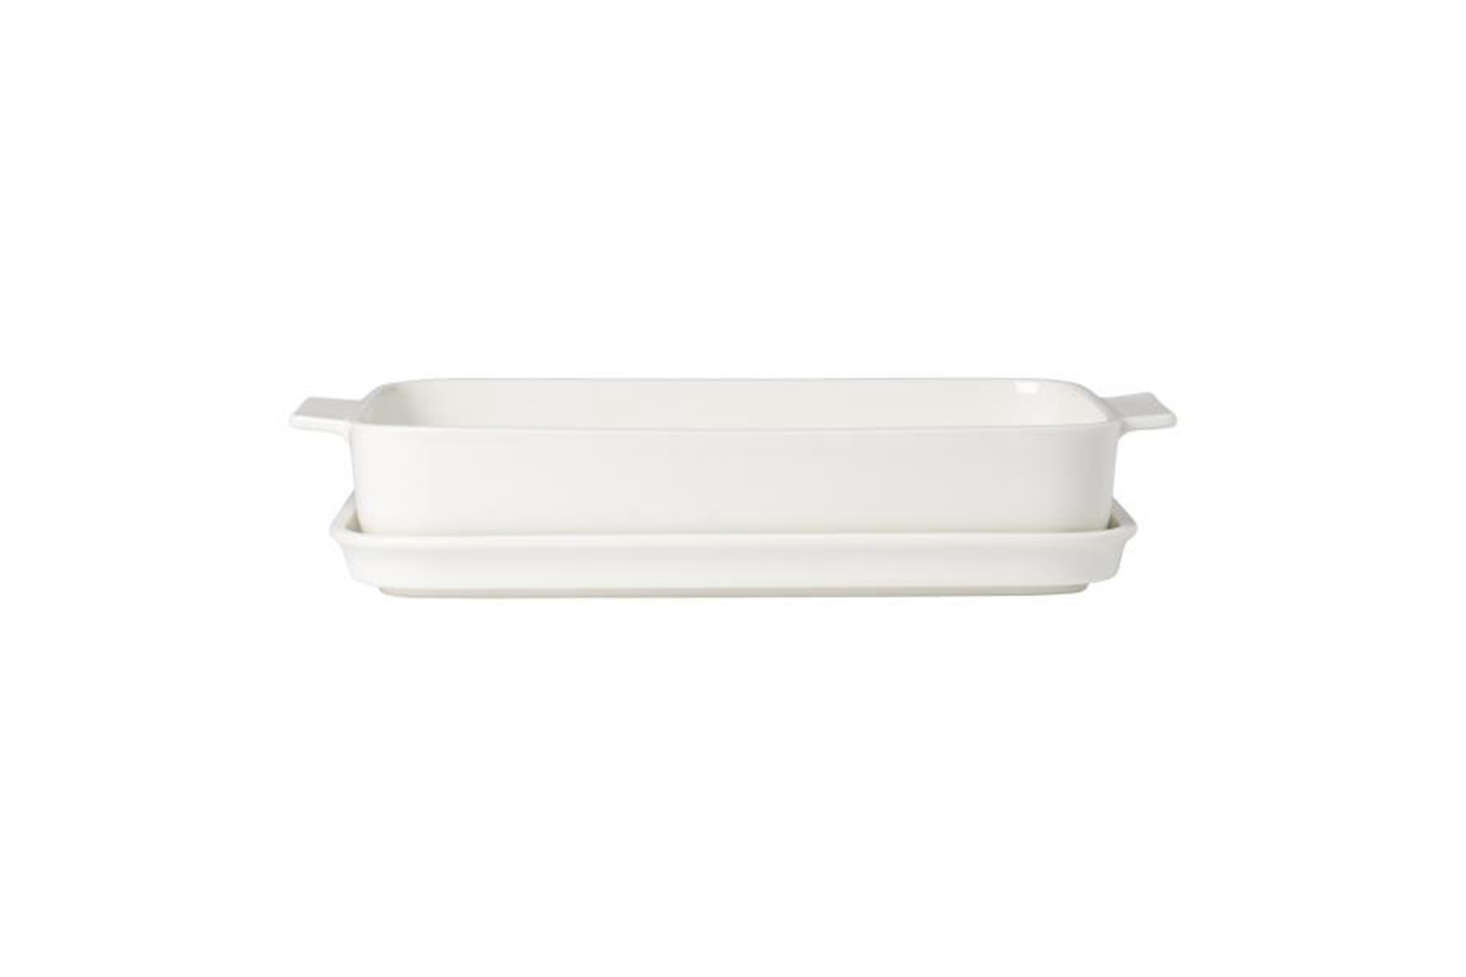 The Villeroy & Boch Clever Cooking Medium Rectangular Baker with Lid is $41.21. Contact Villery & Boch for stock information and ordering.